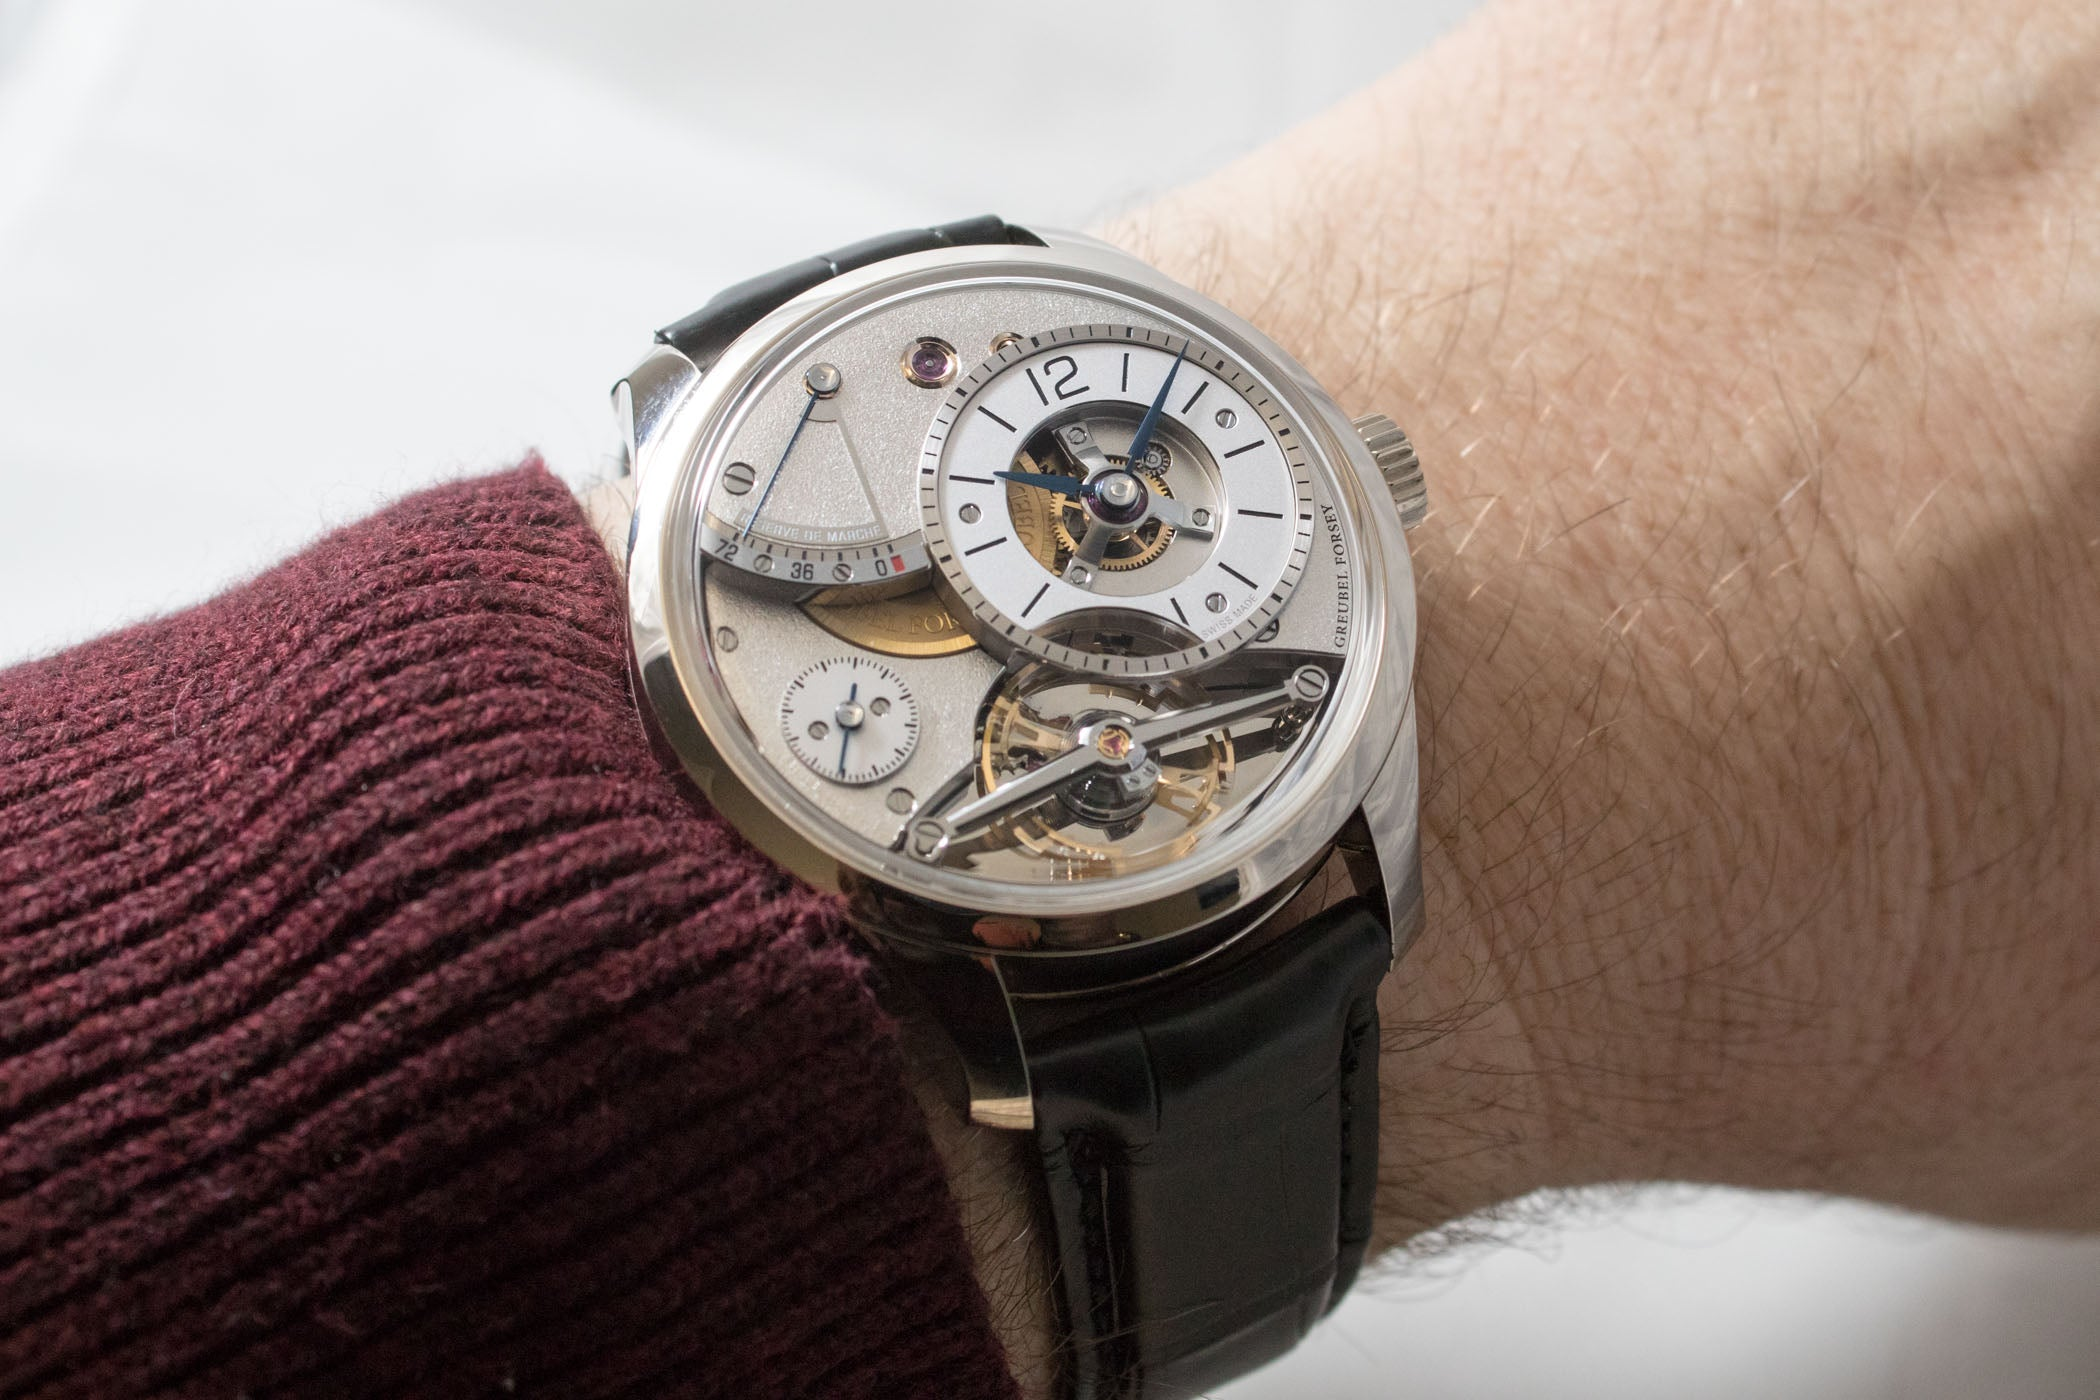 Buy Greubel Forsey watches with Bitcoin on BitDials